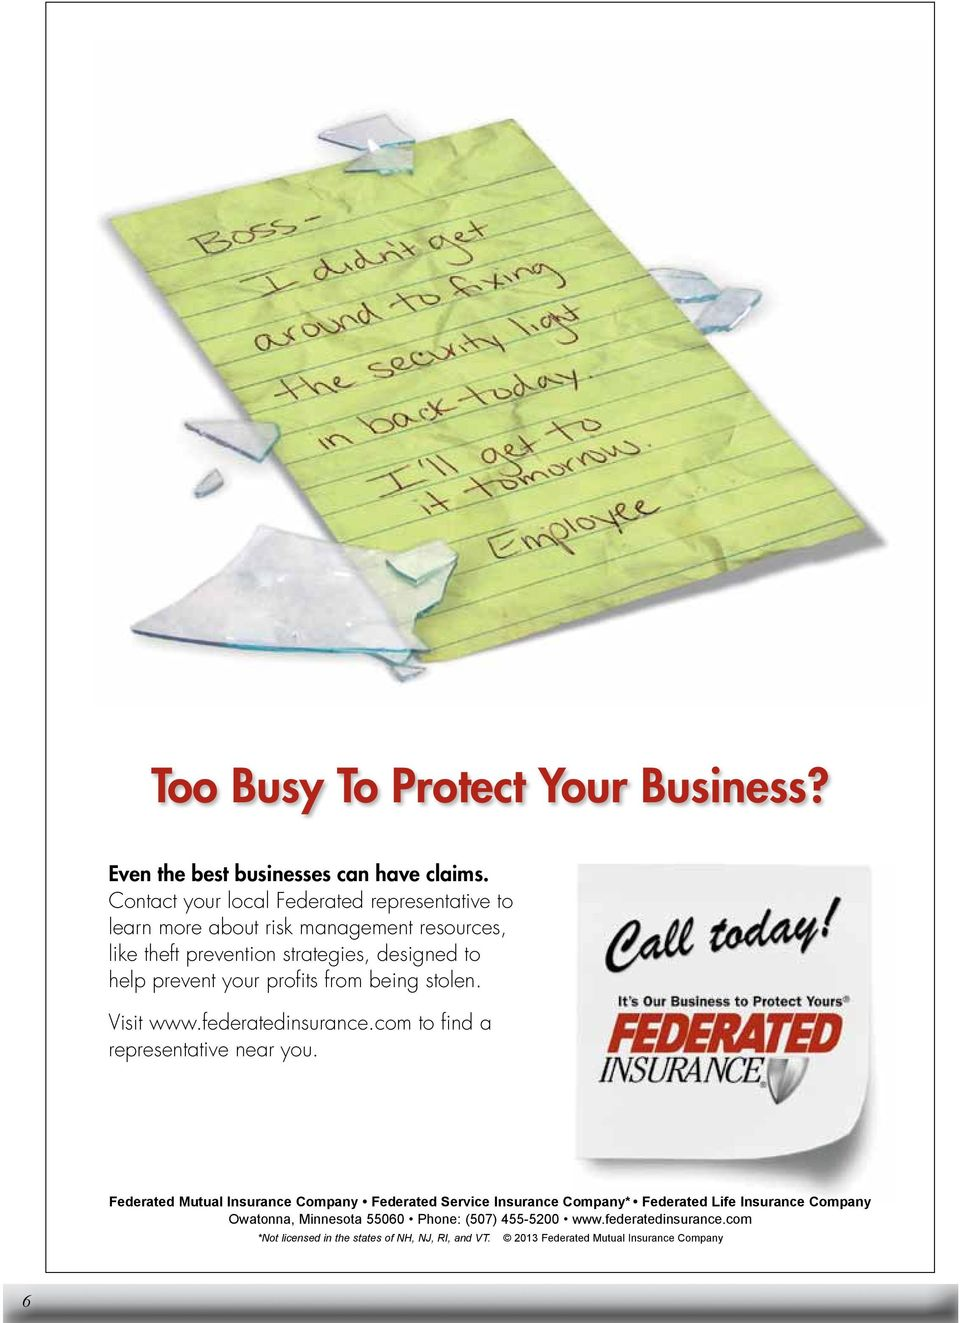 your profits from being stolen. Visit www.federatedinsurance.com to find a representative near you.